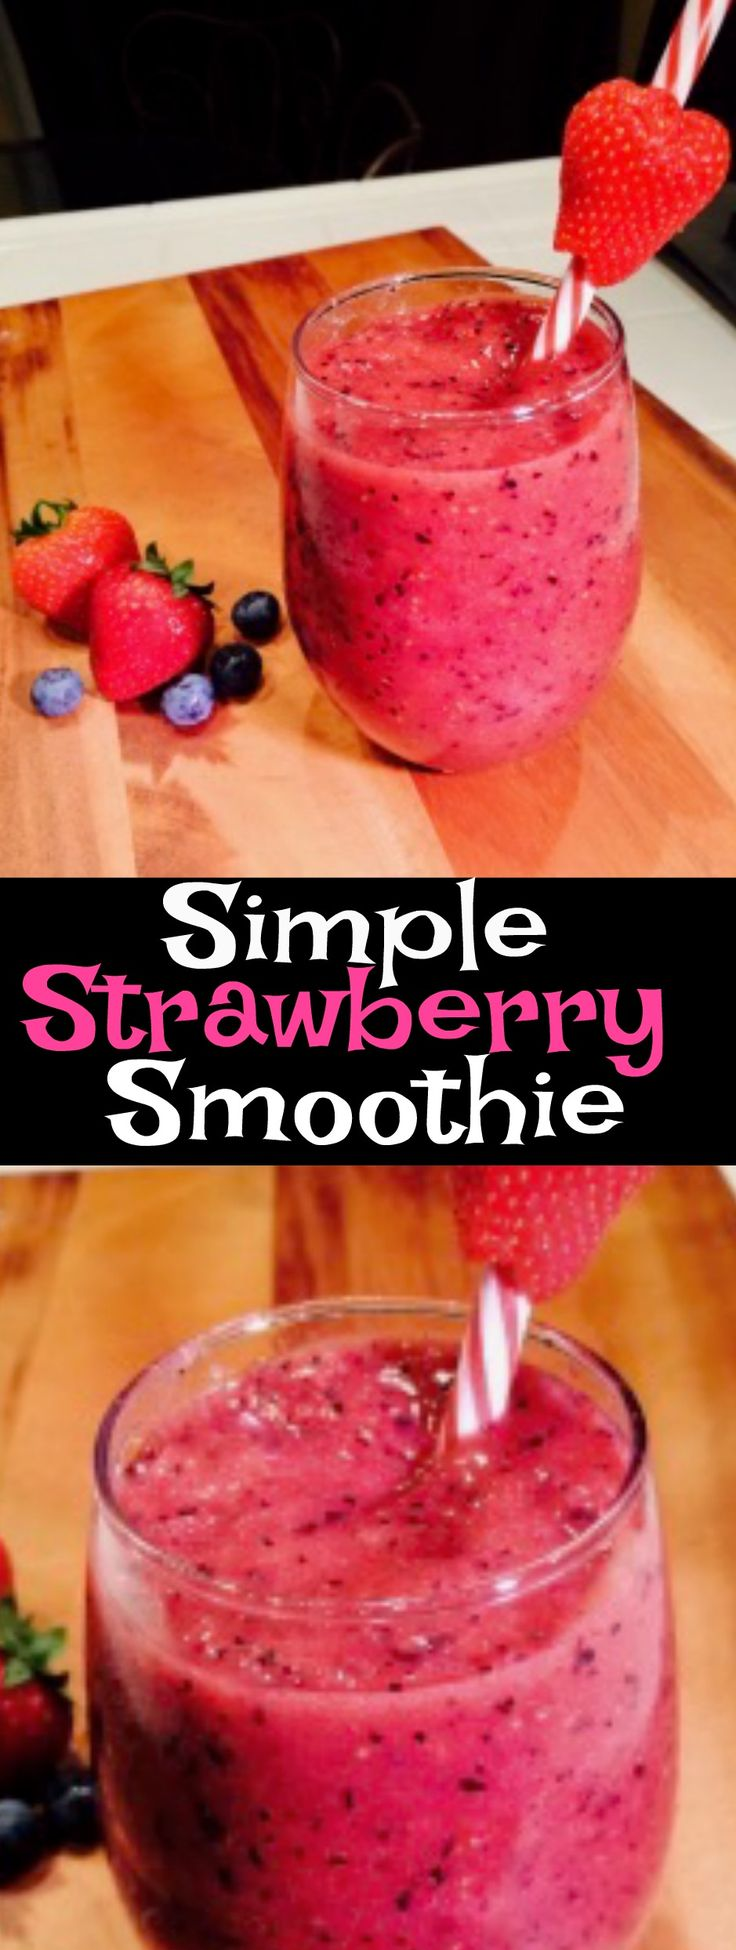 Delicious and quick strawberry smoothie recipe. #smoothie #breakfast